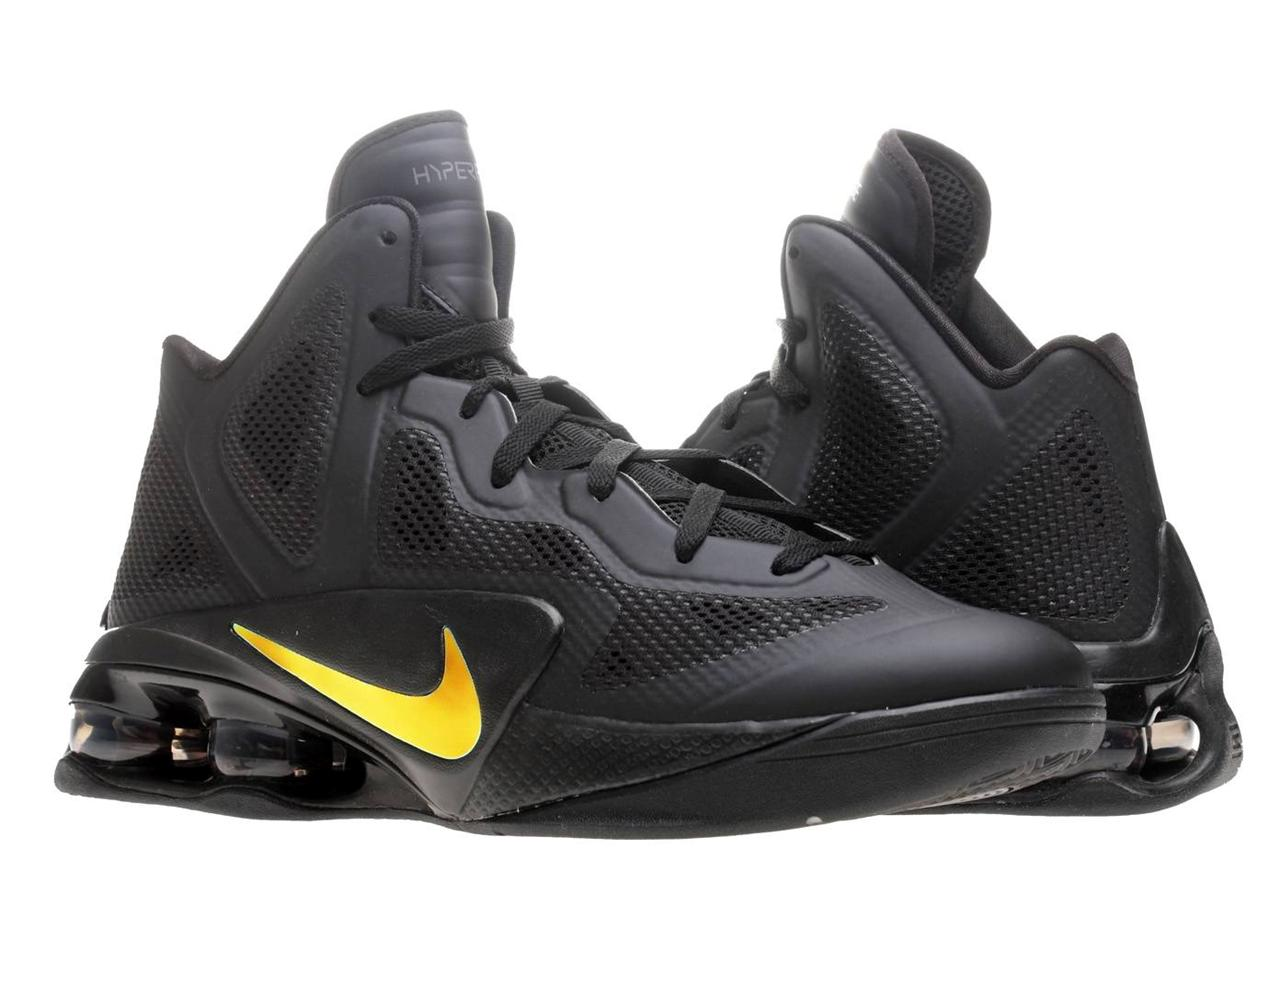 nike shox r4 metallic gold australia nike shox r4 metallic. Black Bedroom Furniture Sets. Home Design Ideas